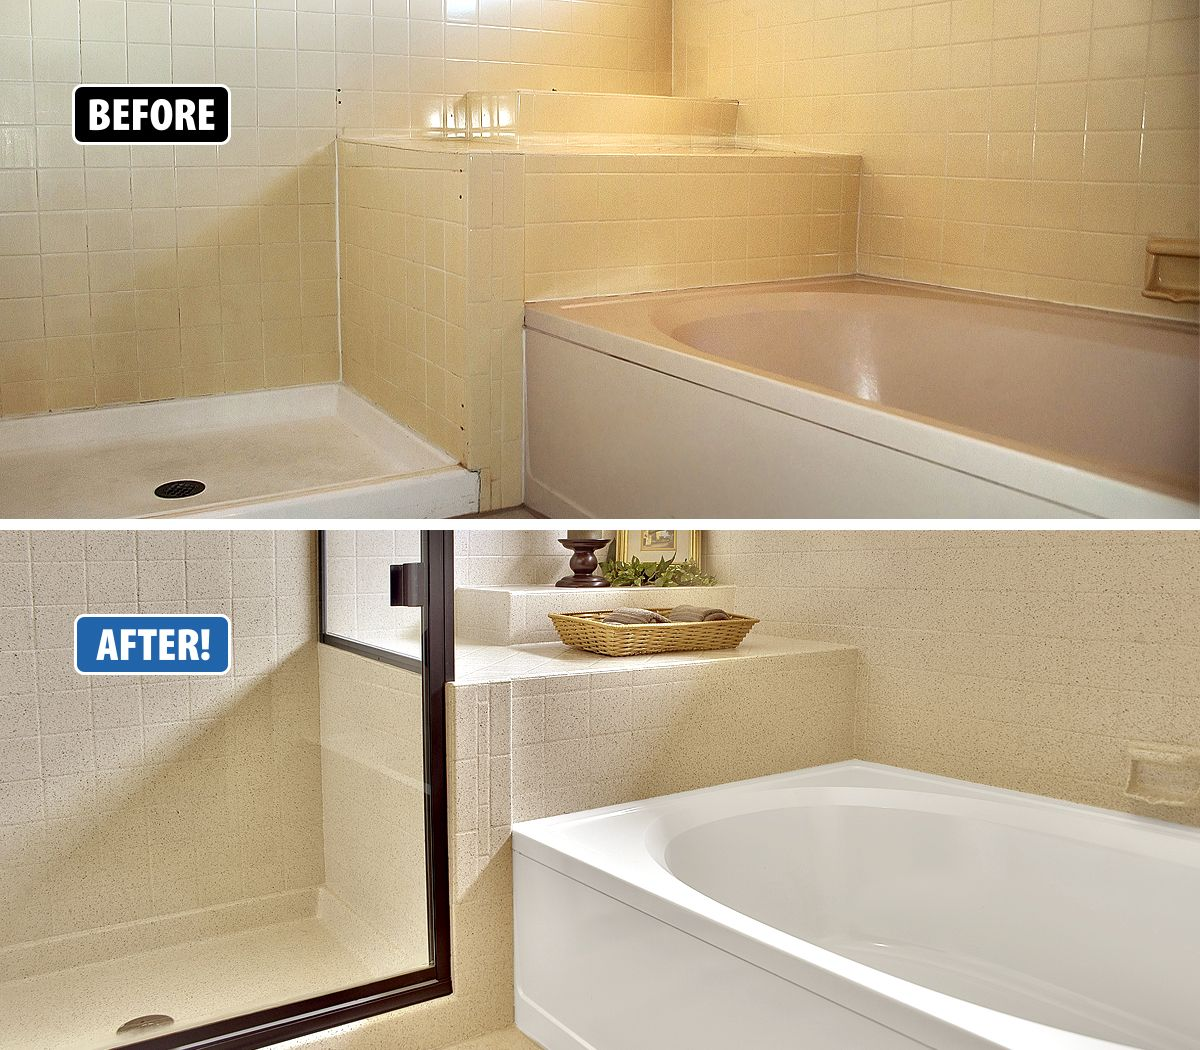 Worn And Stained Tub And Tile Don T Have To Be Replaced Miracle Method Can Refinish Over The Surface Making Refinish Bathtub Tub Refinishing Bathroom Makeover